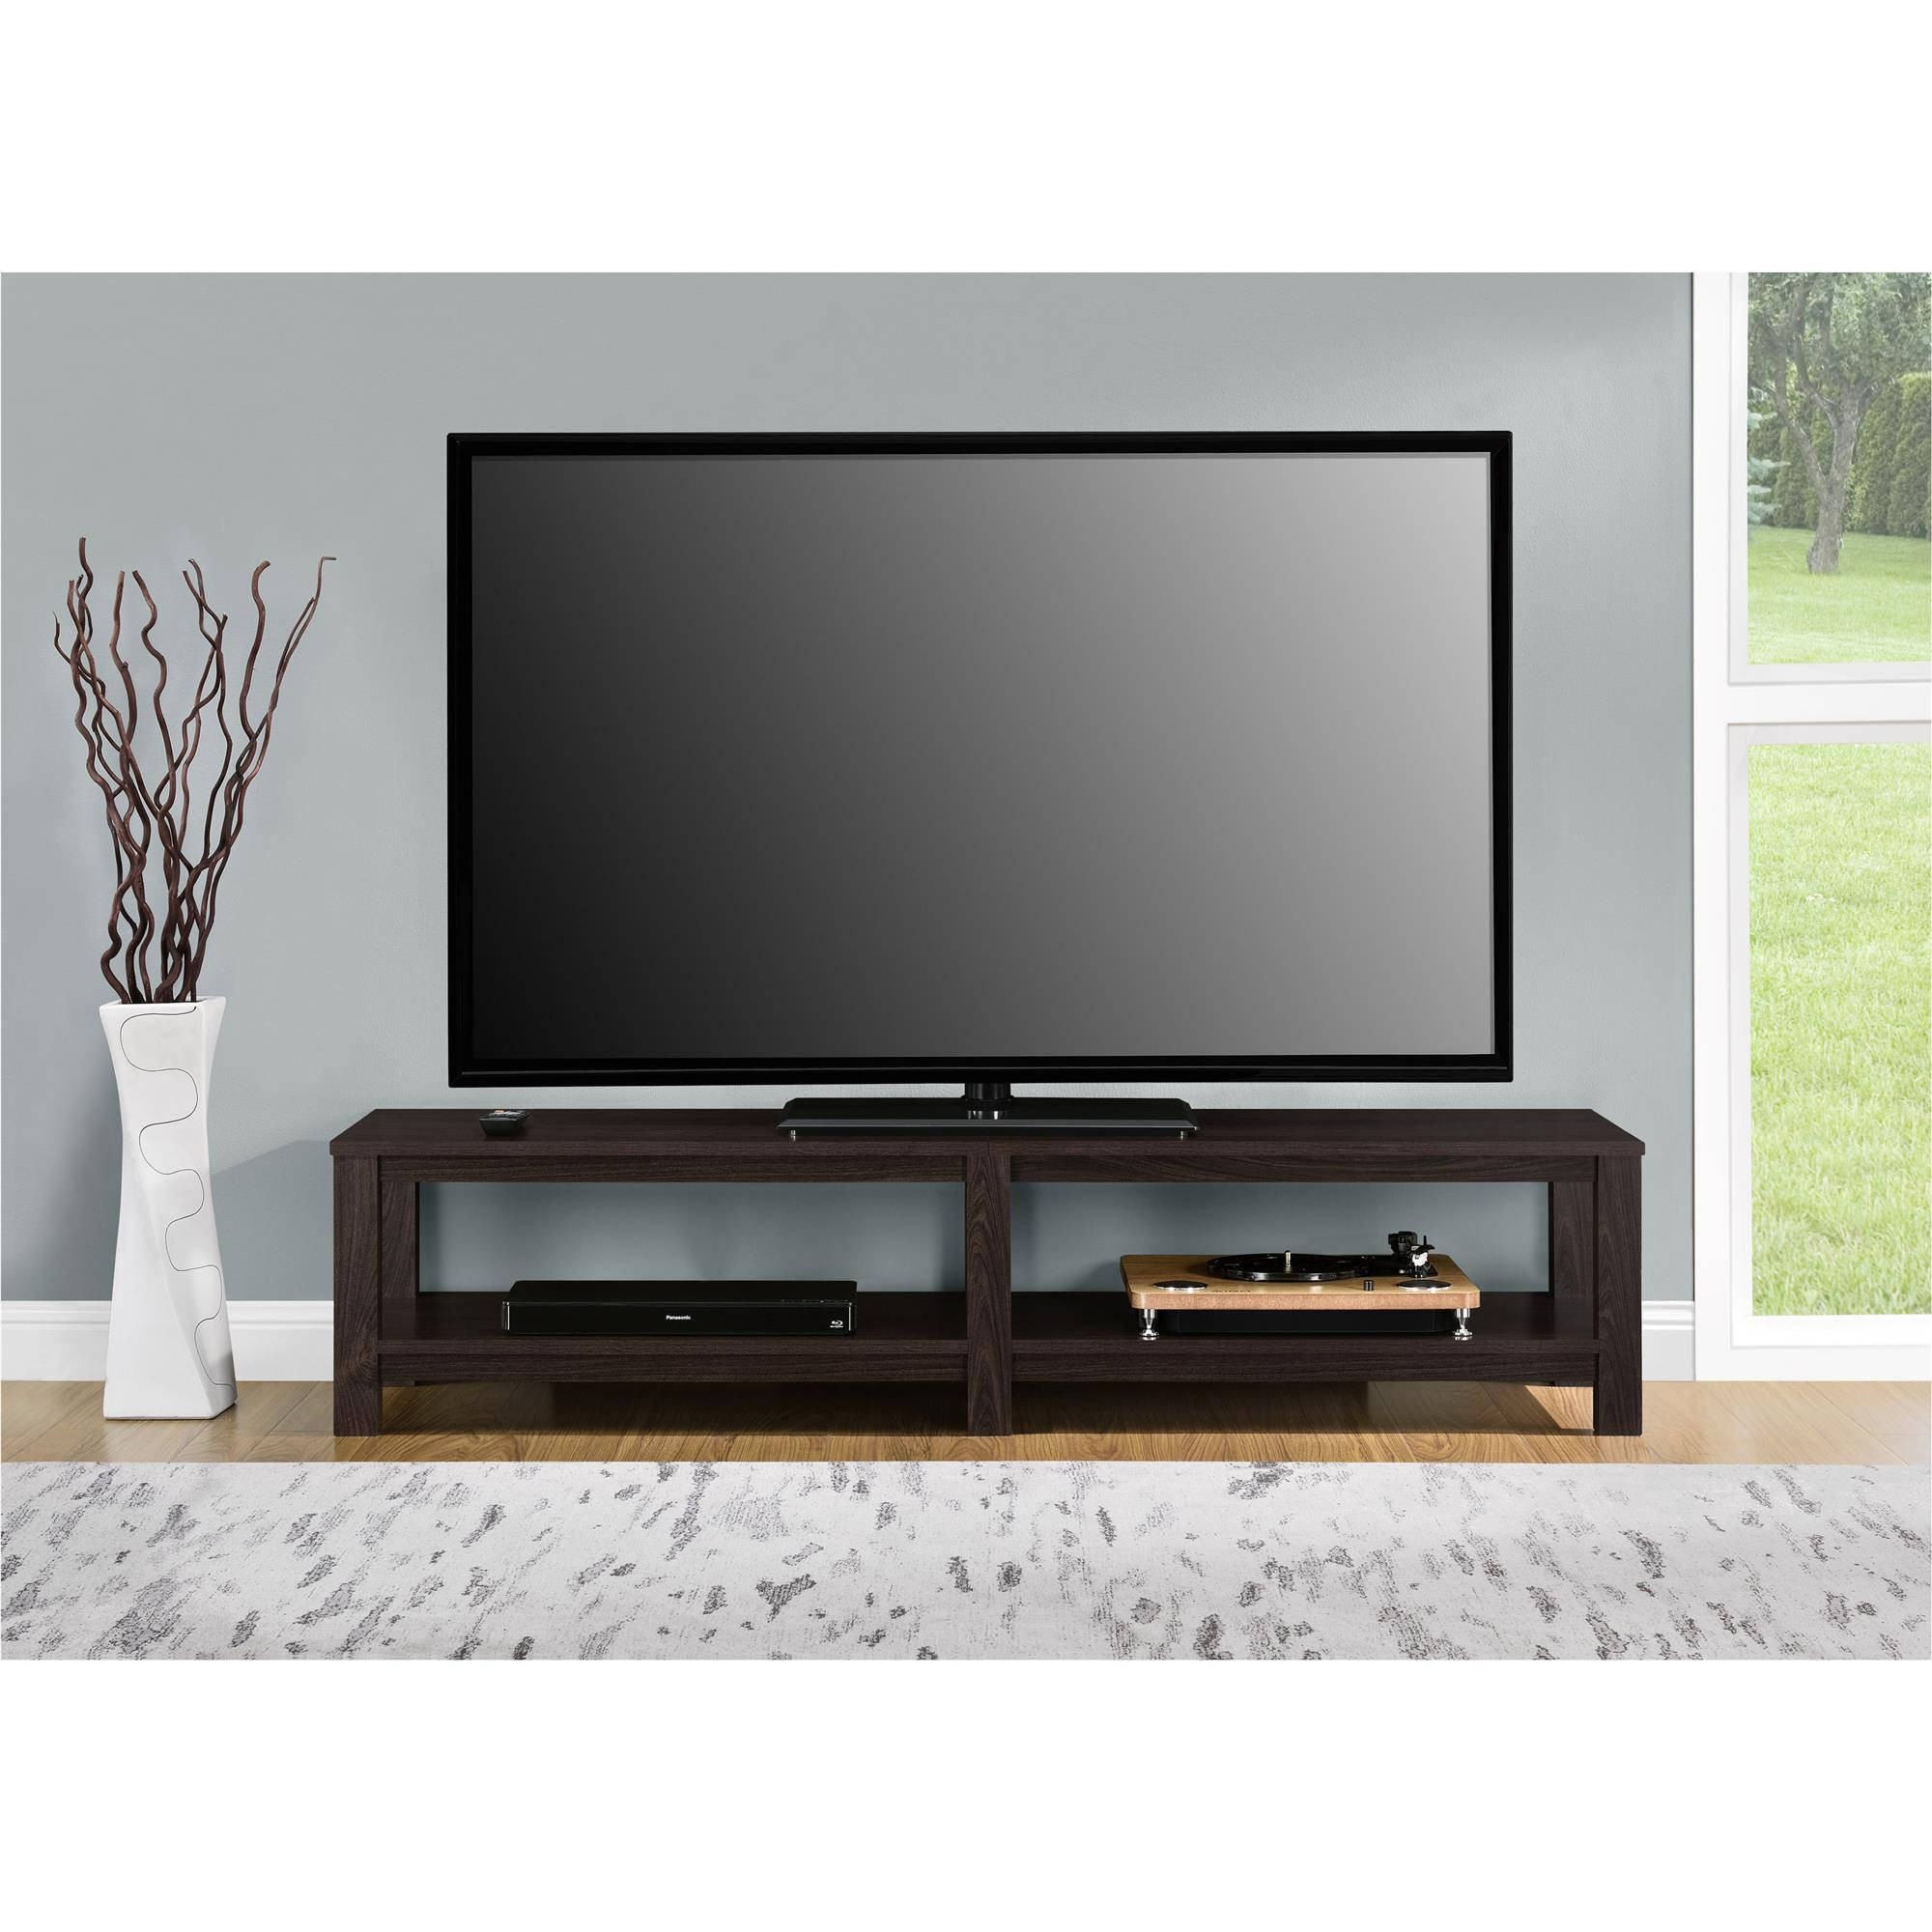 13 Stunning 65 Inch Tv Stand For Your New Living Room with Jaxon 65 Inch Tv Stands (Image 2 of 30)